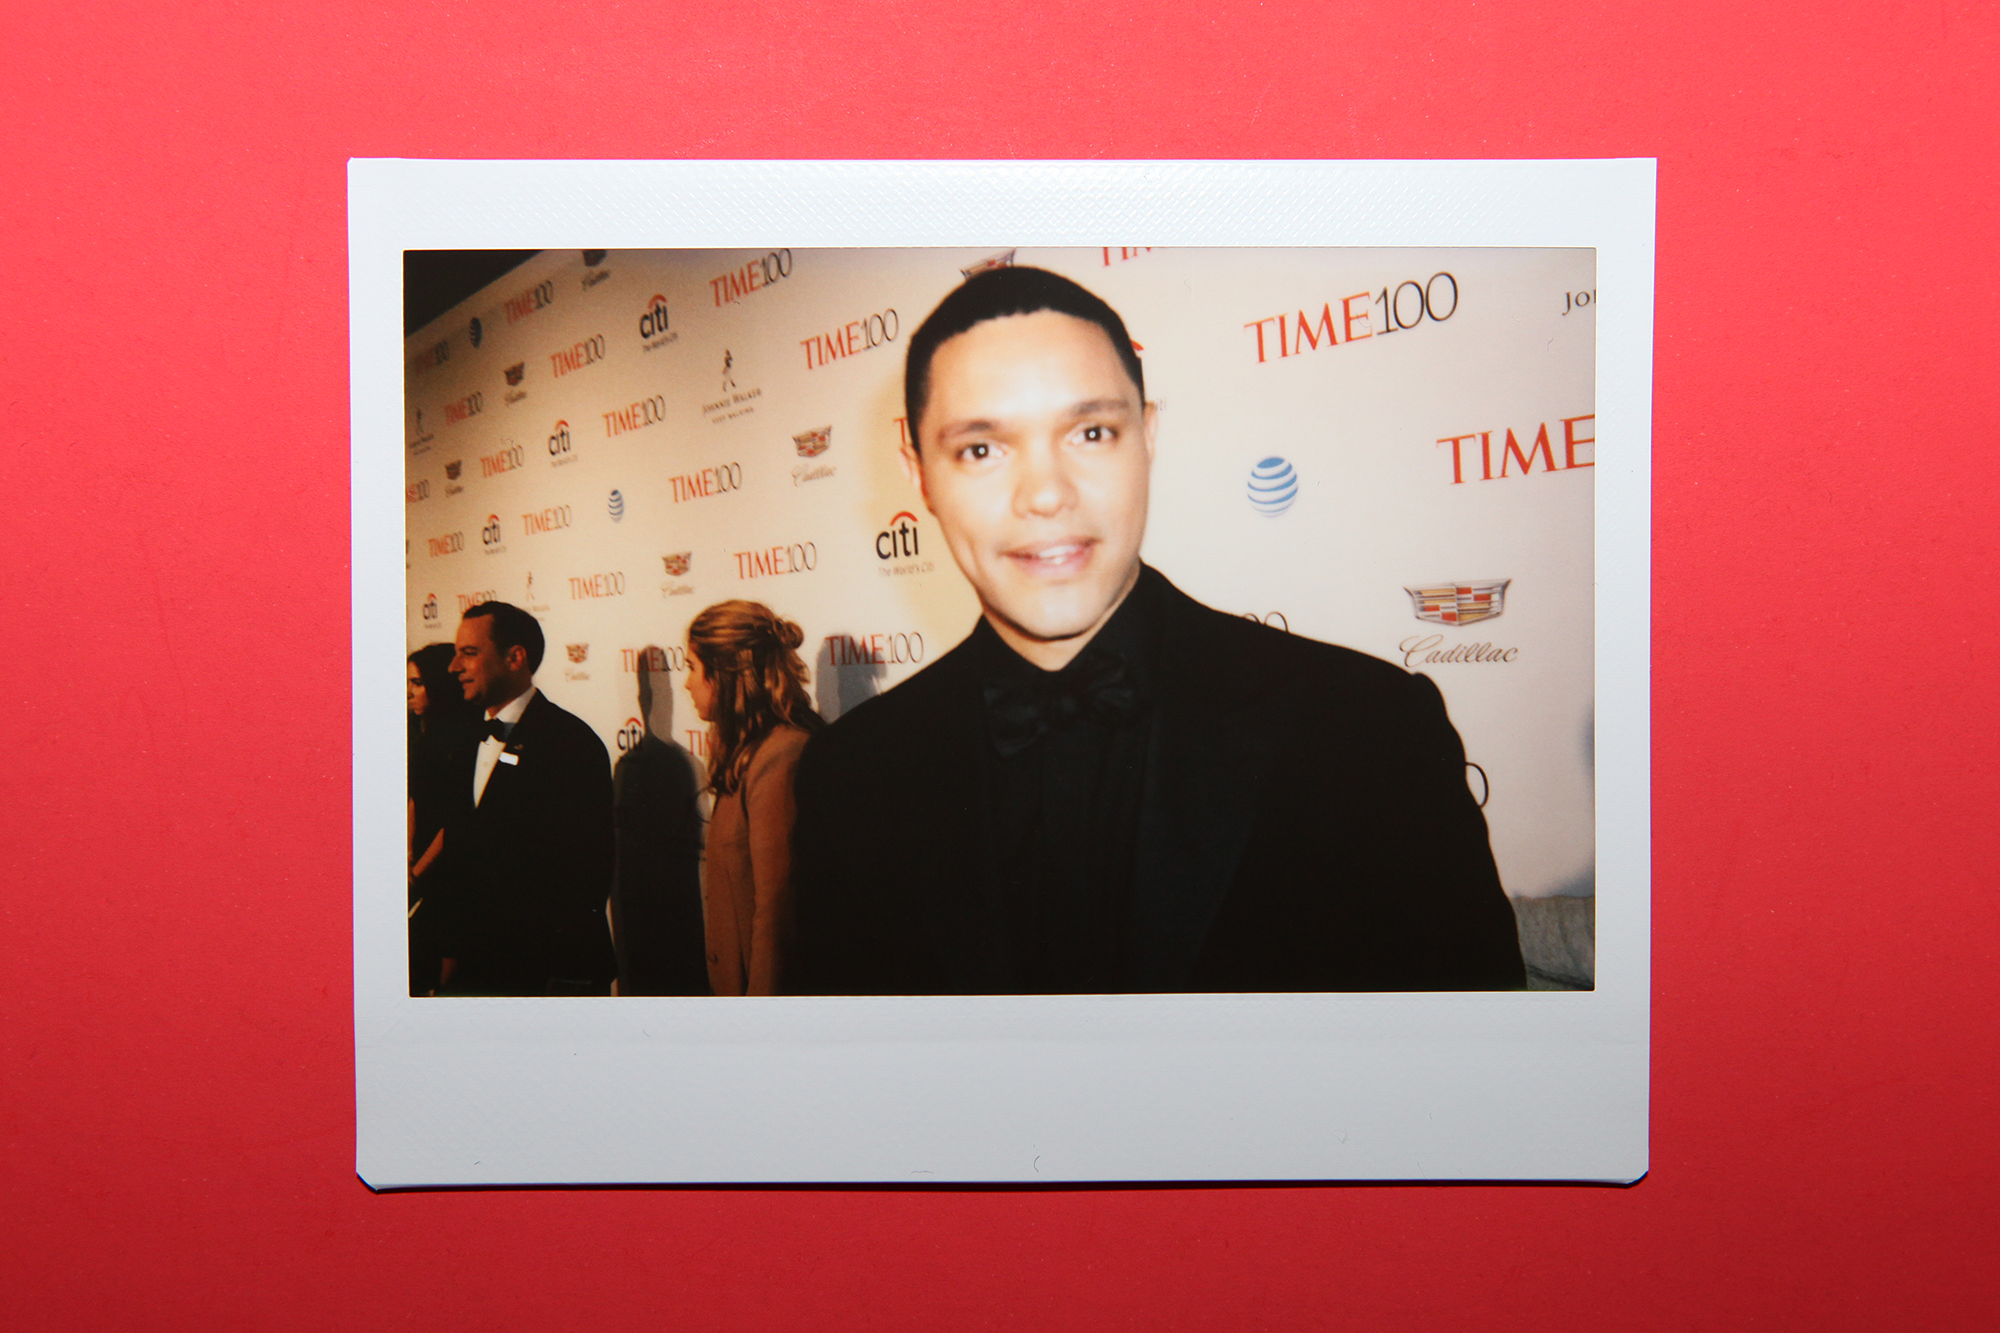 Trevor Noah arrives at the TIME 100 Gala at the Time Warner Center on April 26, 2016 in New York City.